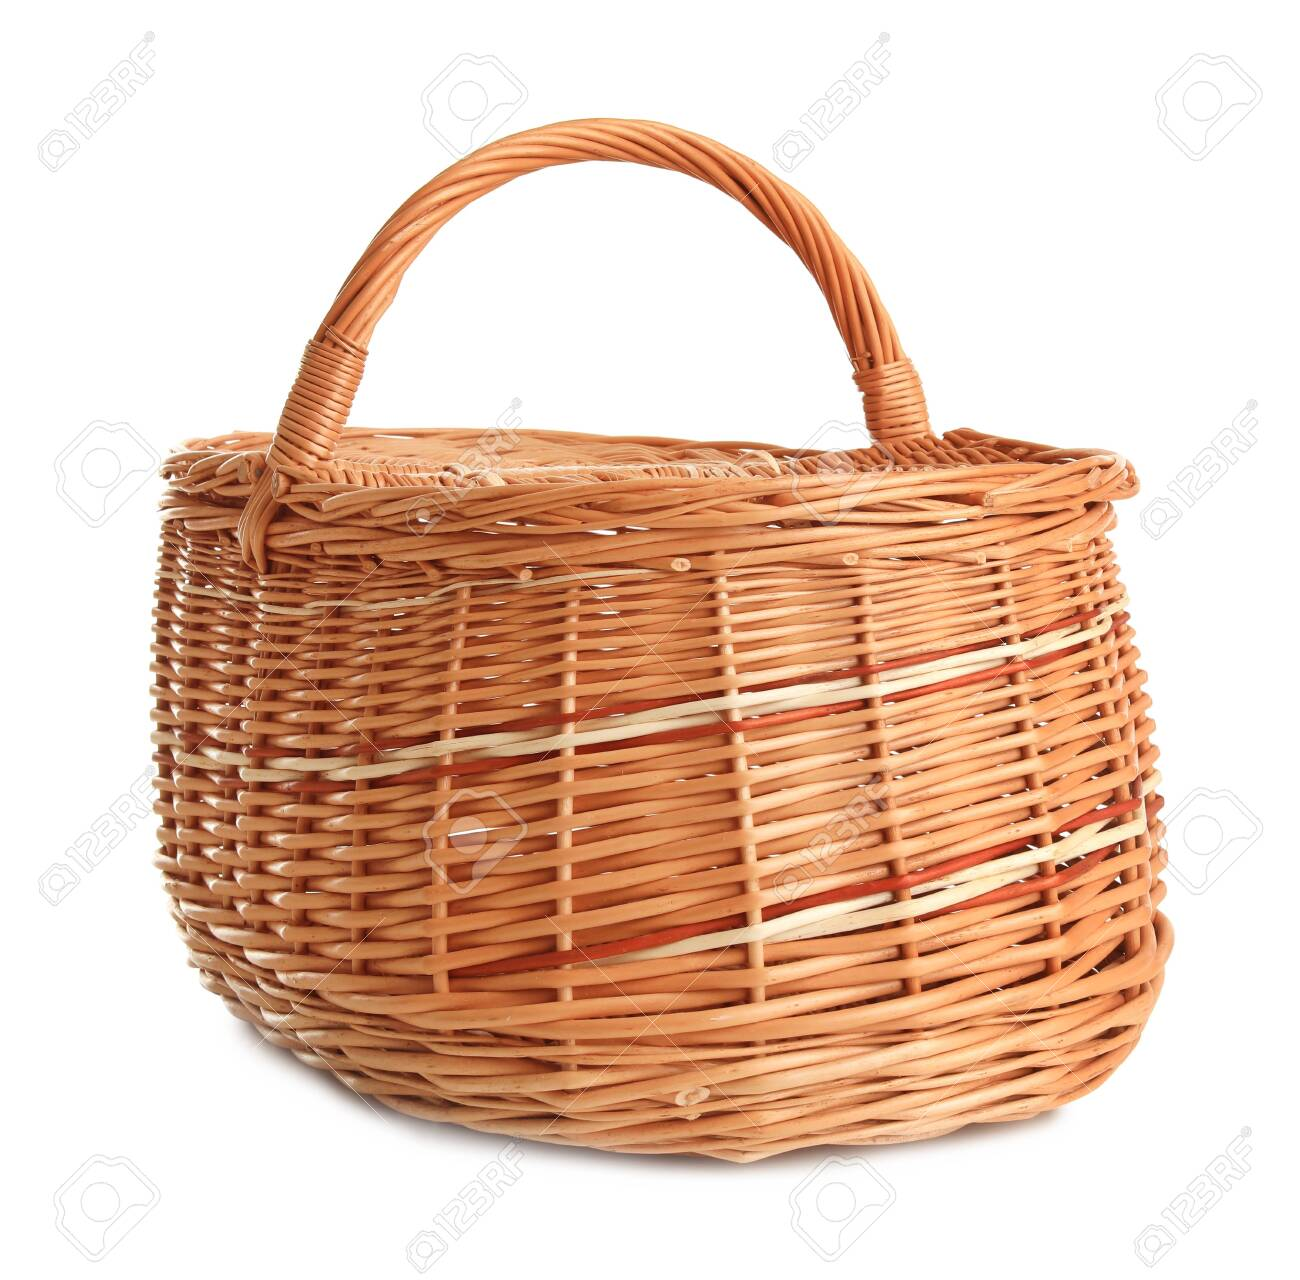 Empty wicker picnic basket isolated on white - 126607406